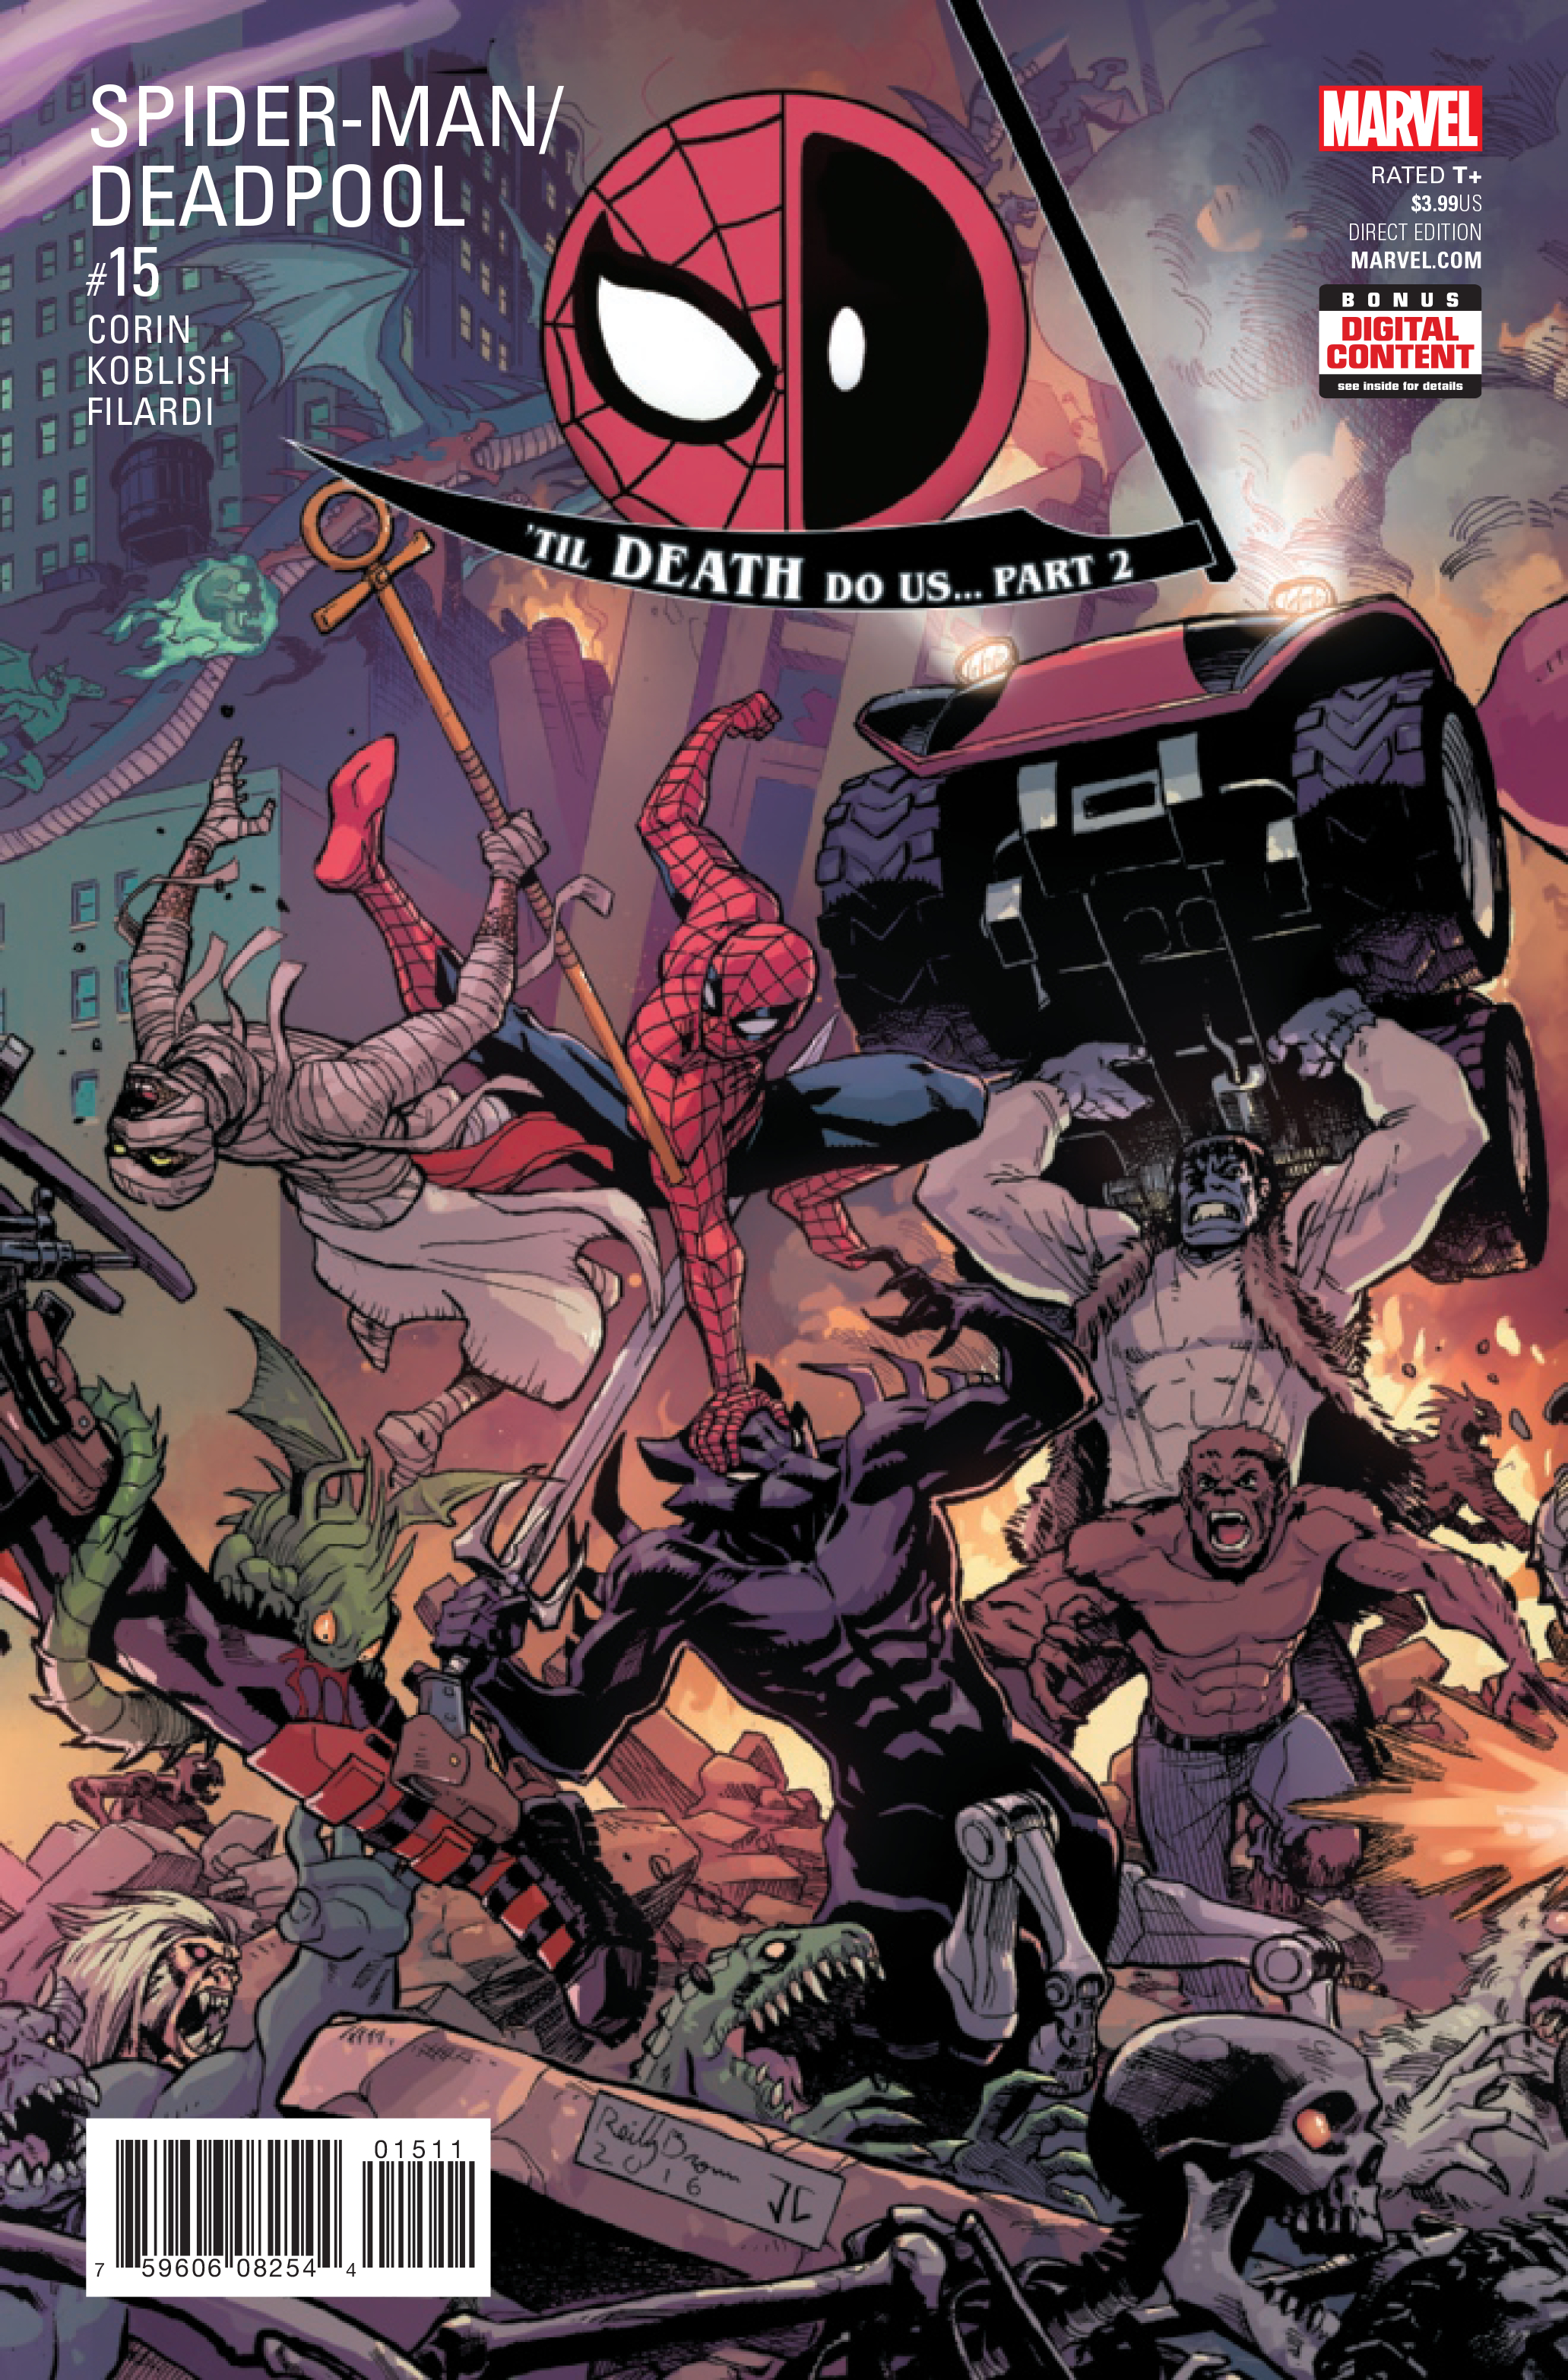 SPIDER-MAN DEADPOOL #15